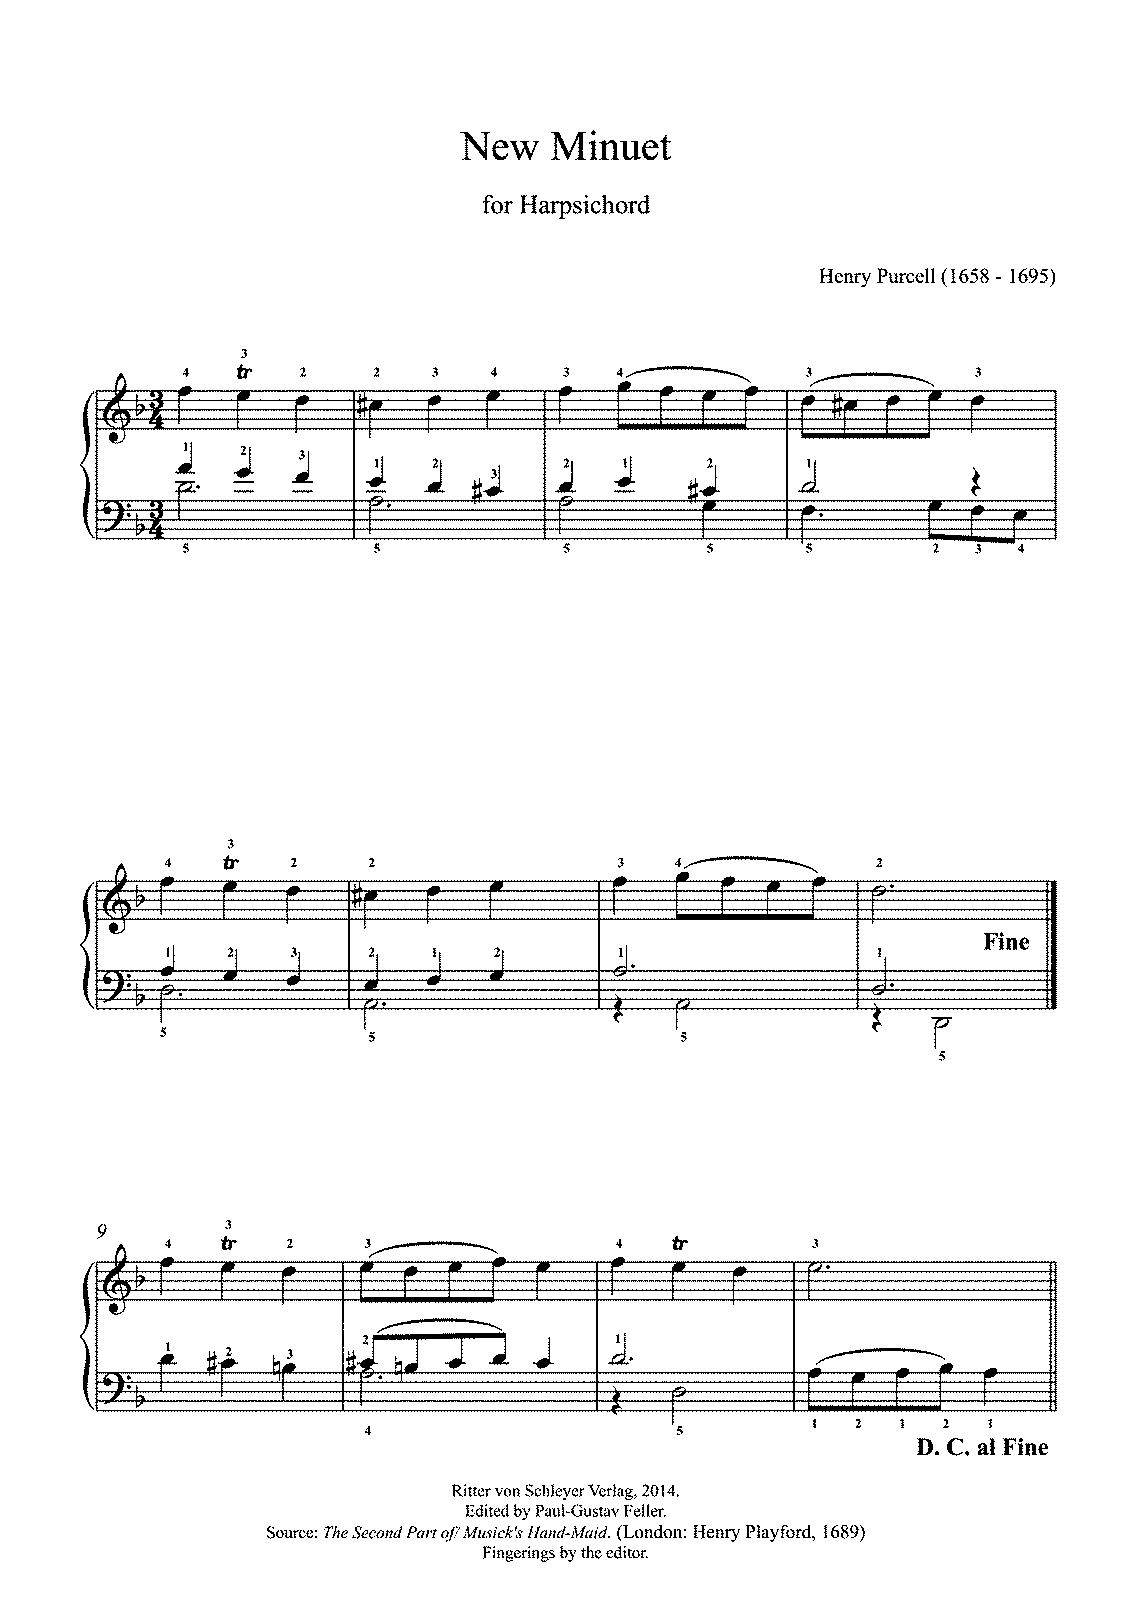 PMLP529706-Purcell; New Minuet (1689).pdf